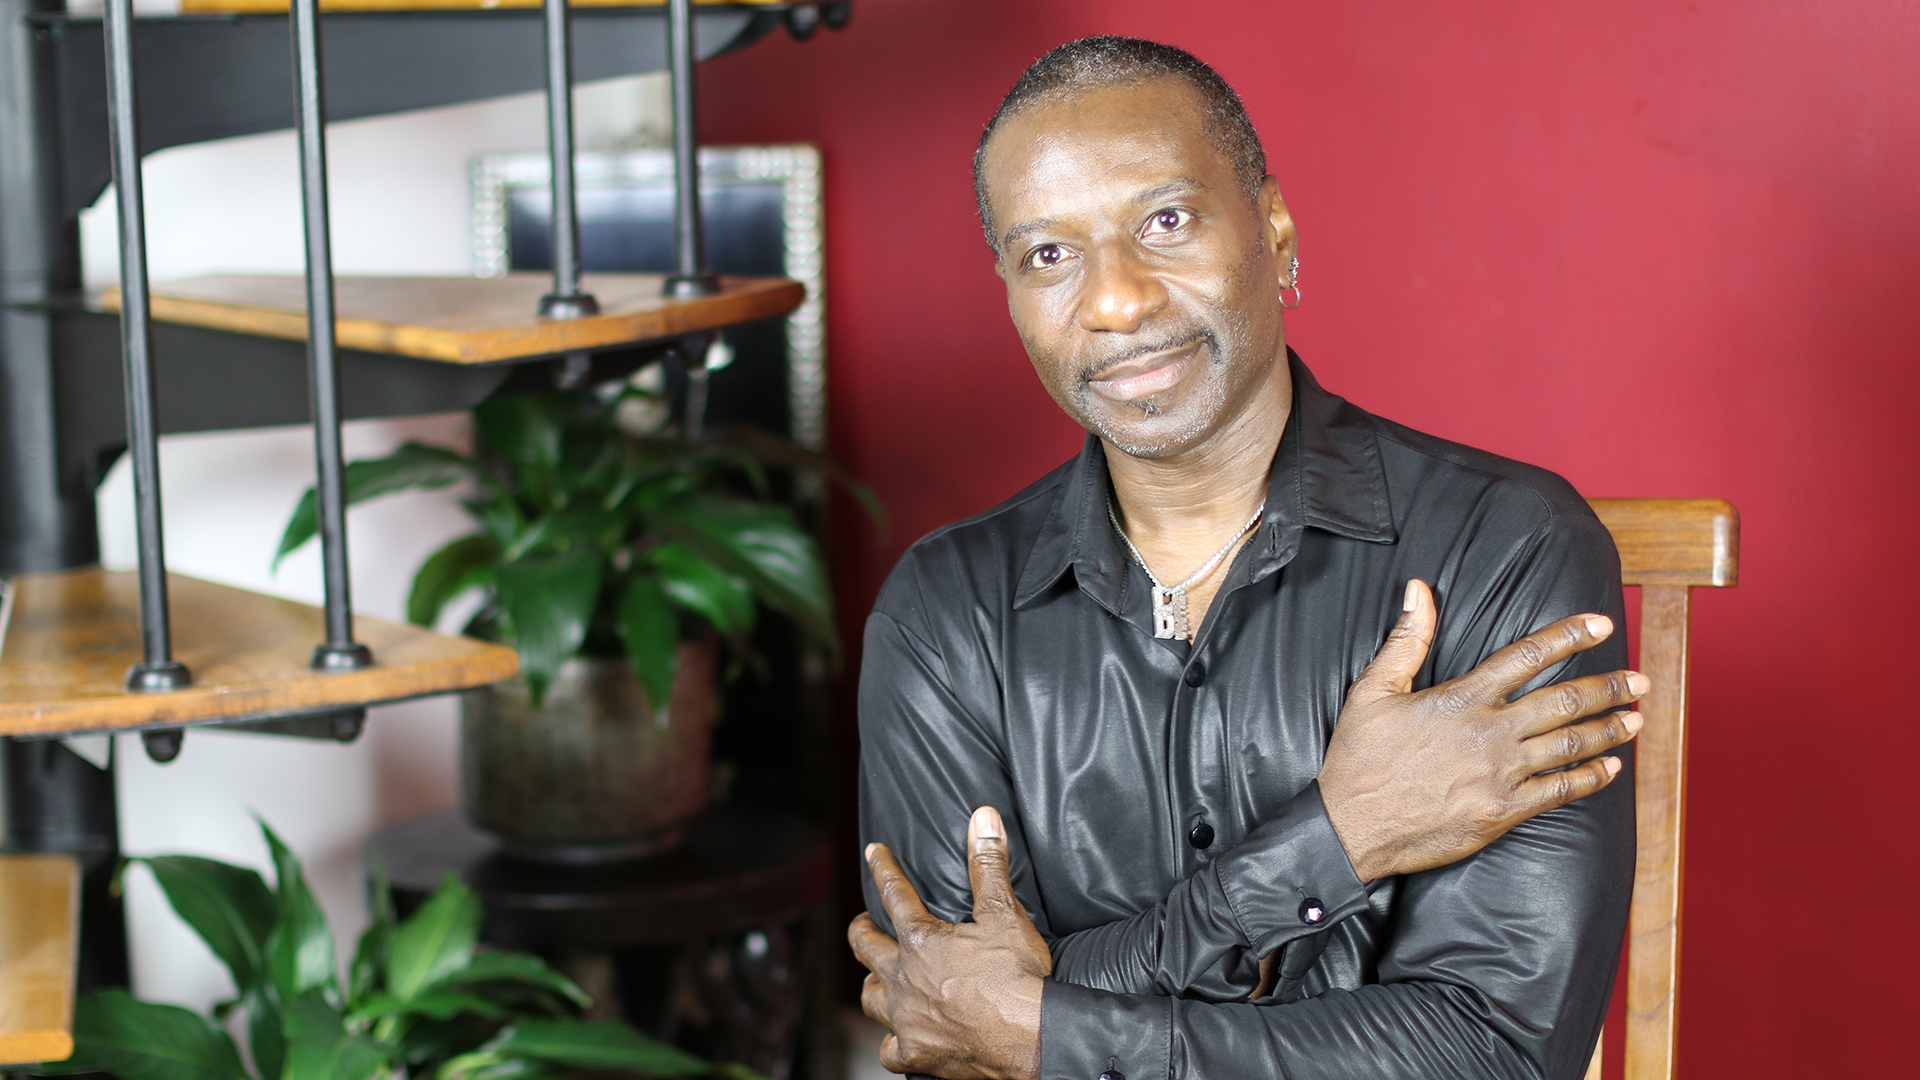 Lacy Darryl Phillips: Take It All With a Grain of Salt — Photo Credit: Shefik